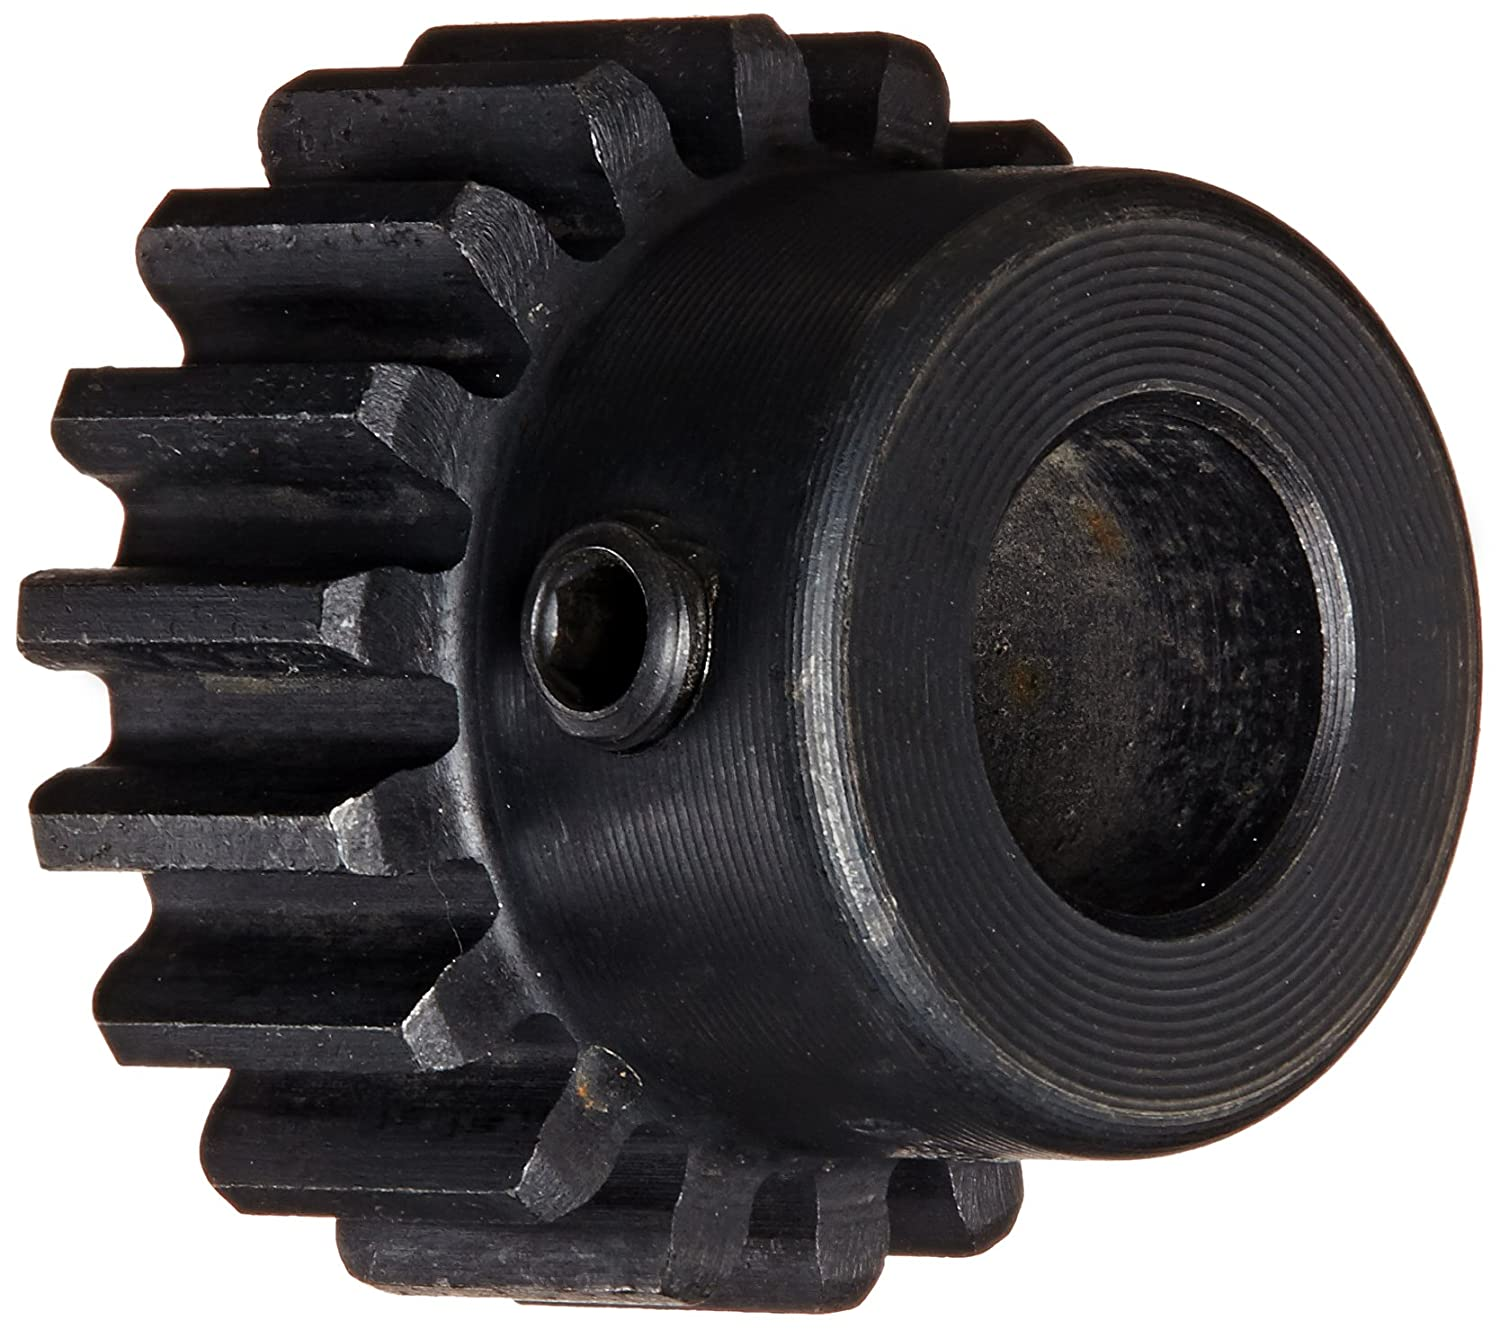 Martin Long-awaited Max 62% OFF S2020BS 1 2 Spur Gear High Angle Carb 14.5° Pressure